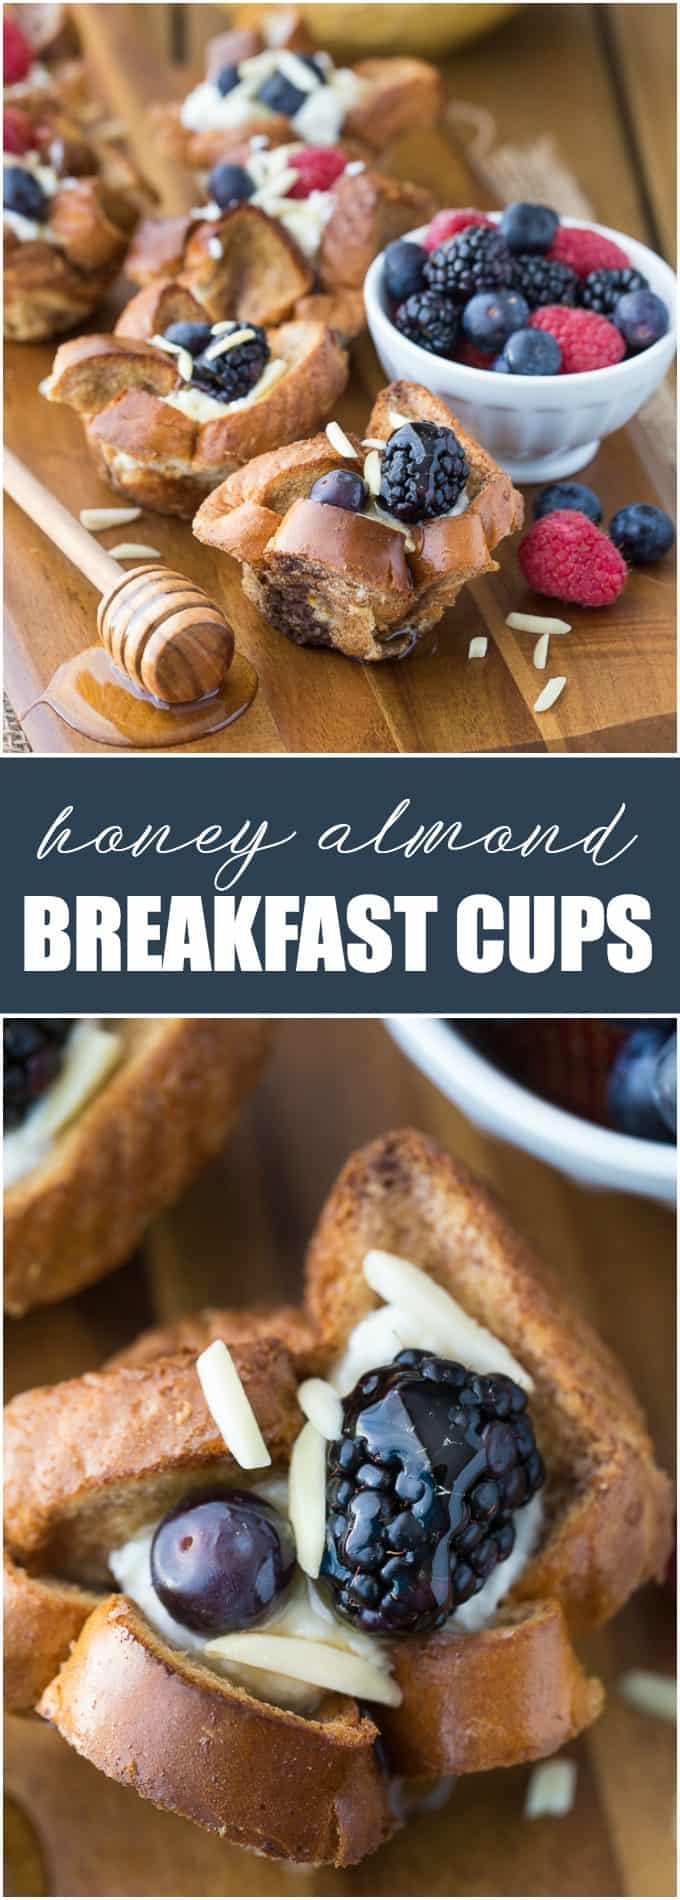 Honey Almond Breakfast Cups - Even the picky eaters loved this easy weekend breakfast recipe! French toast cups are filled with a sweet, creamy ricotta filling and topped with honey, berries and slivered almonds.